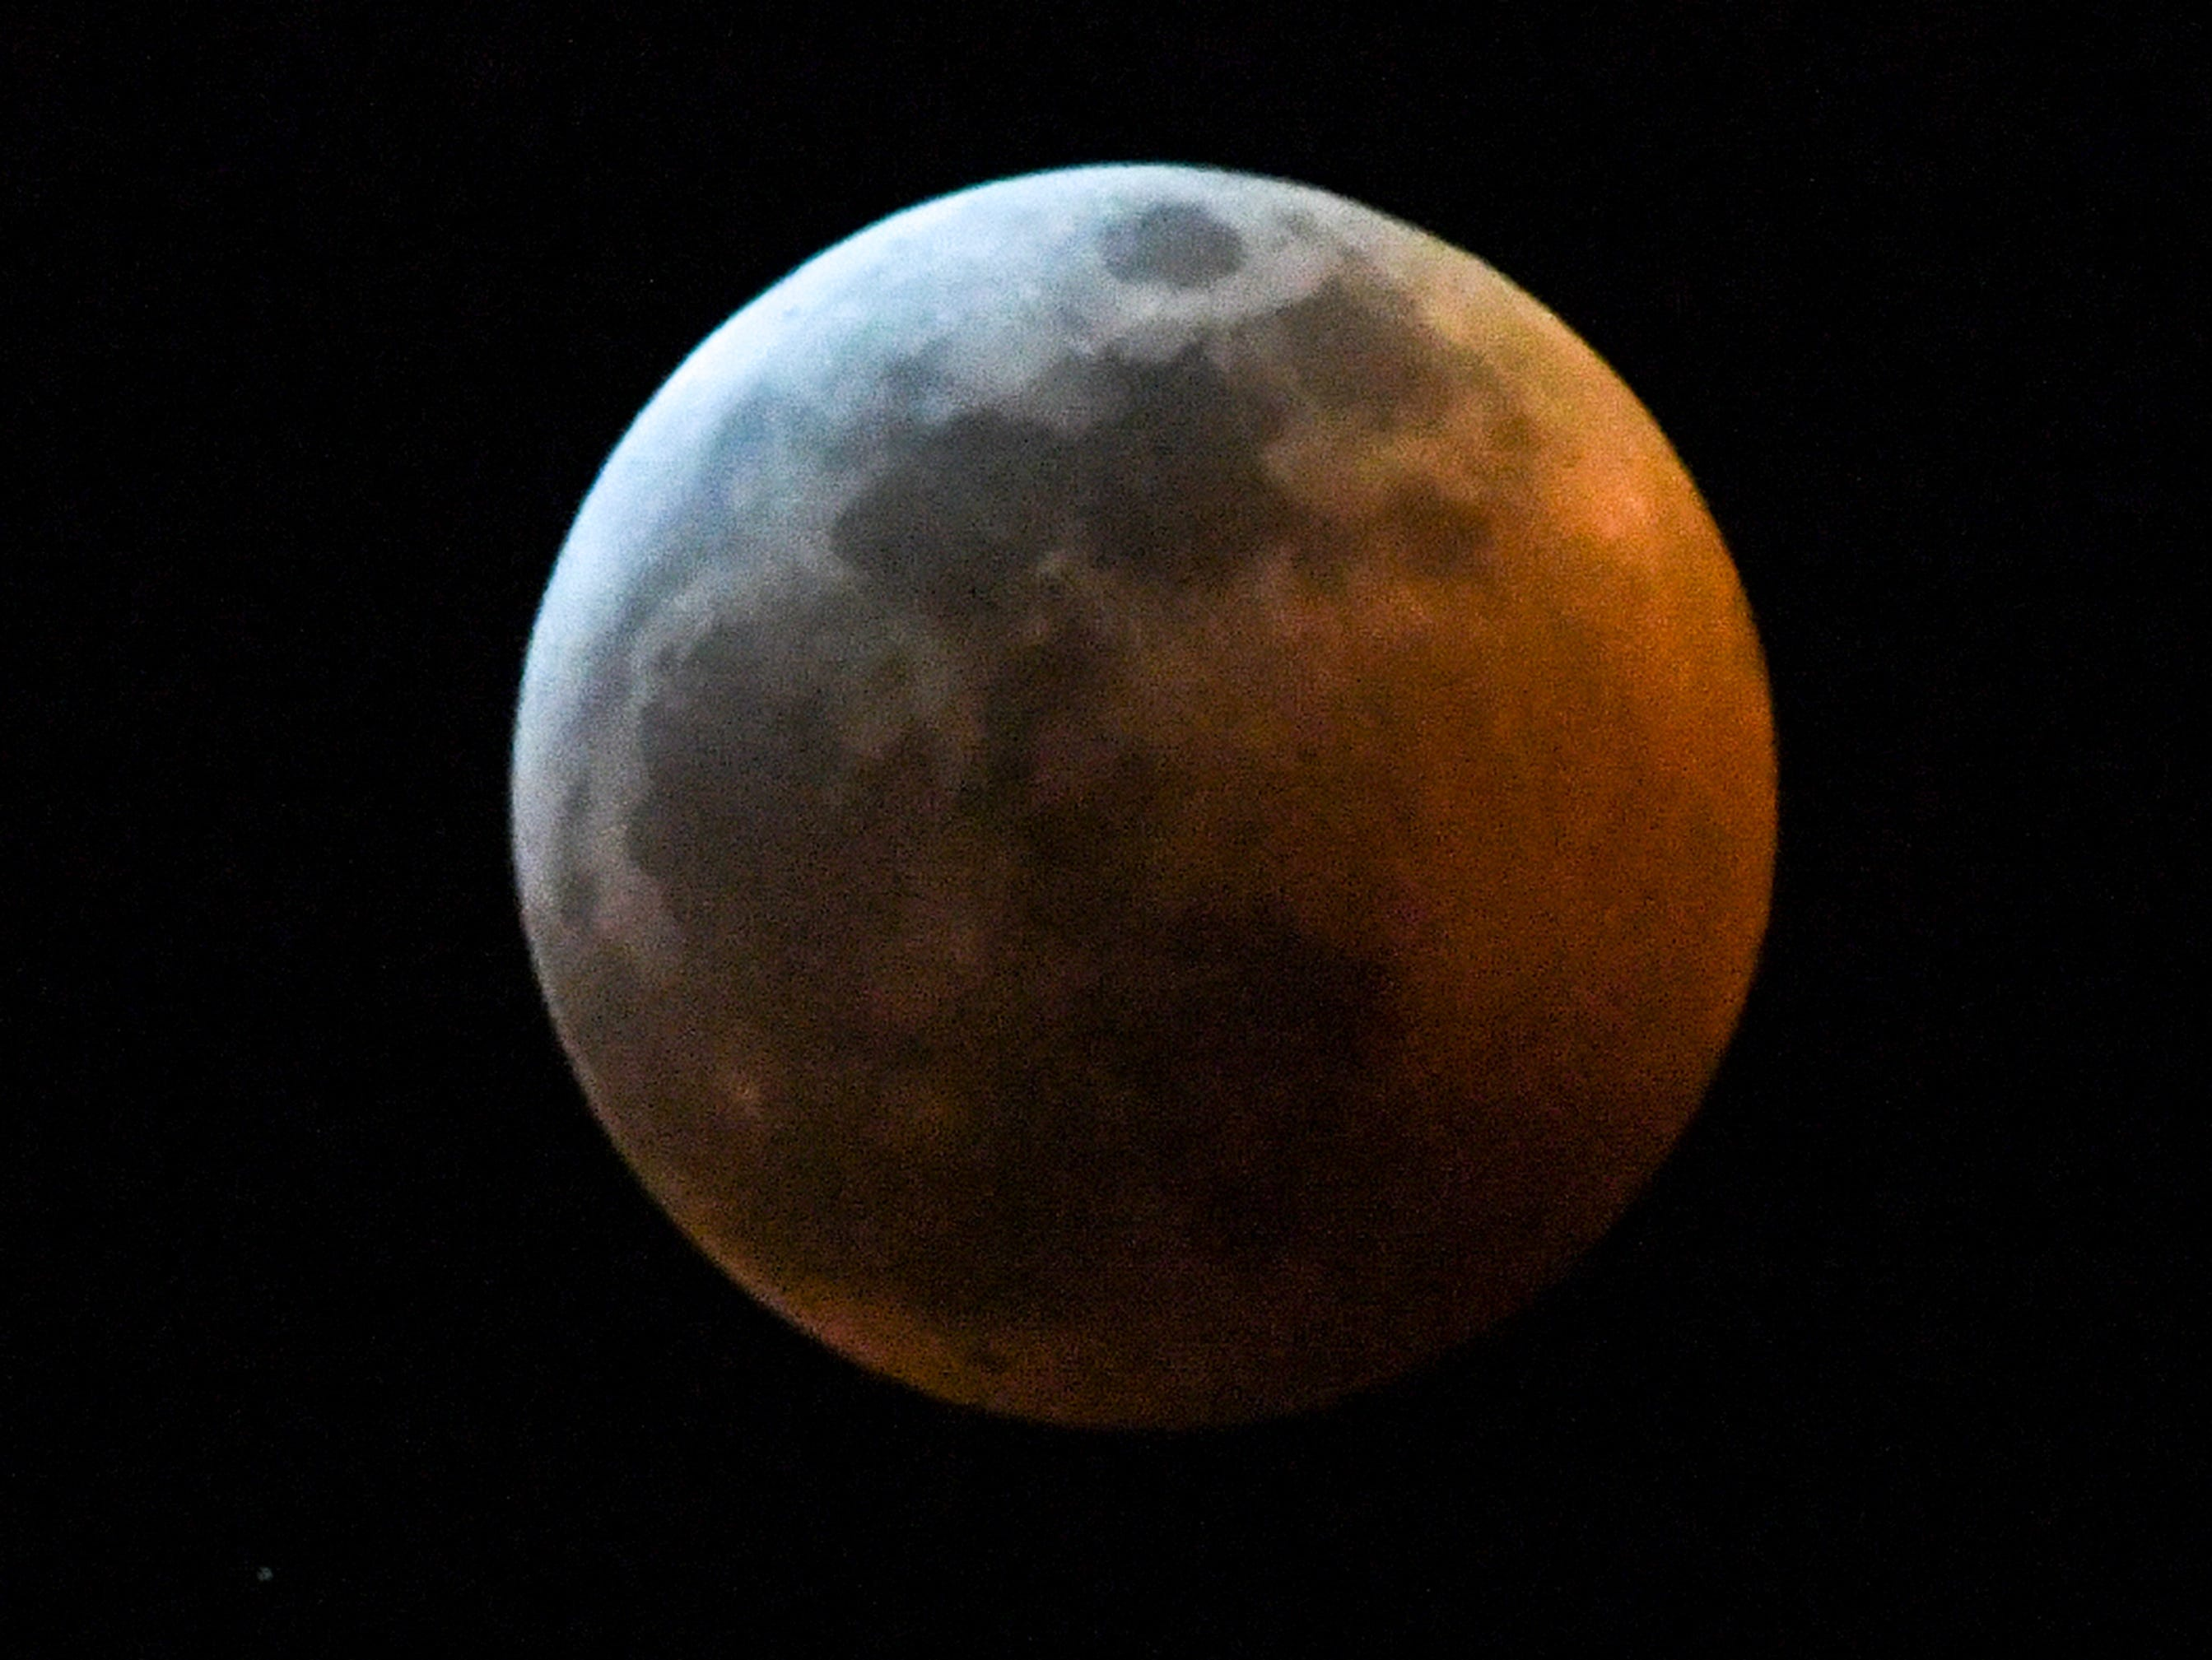 The Super blood wolf moon total lunar eclipse, at 11:50 p.m. (EST) January 20, 2019, shortly after when the moon edged into Earth's shadow and became darkened at 11:41 p.m., seen from Anderson, S.C.